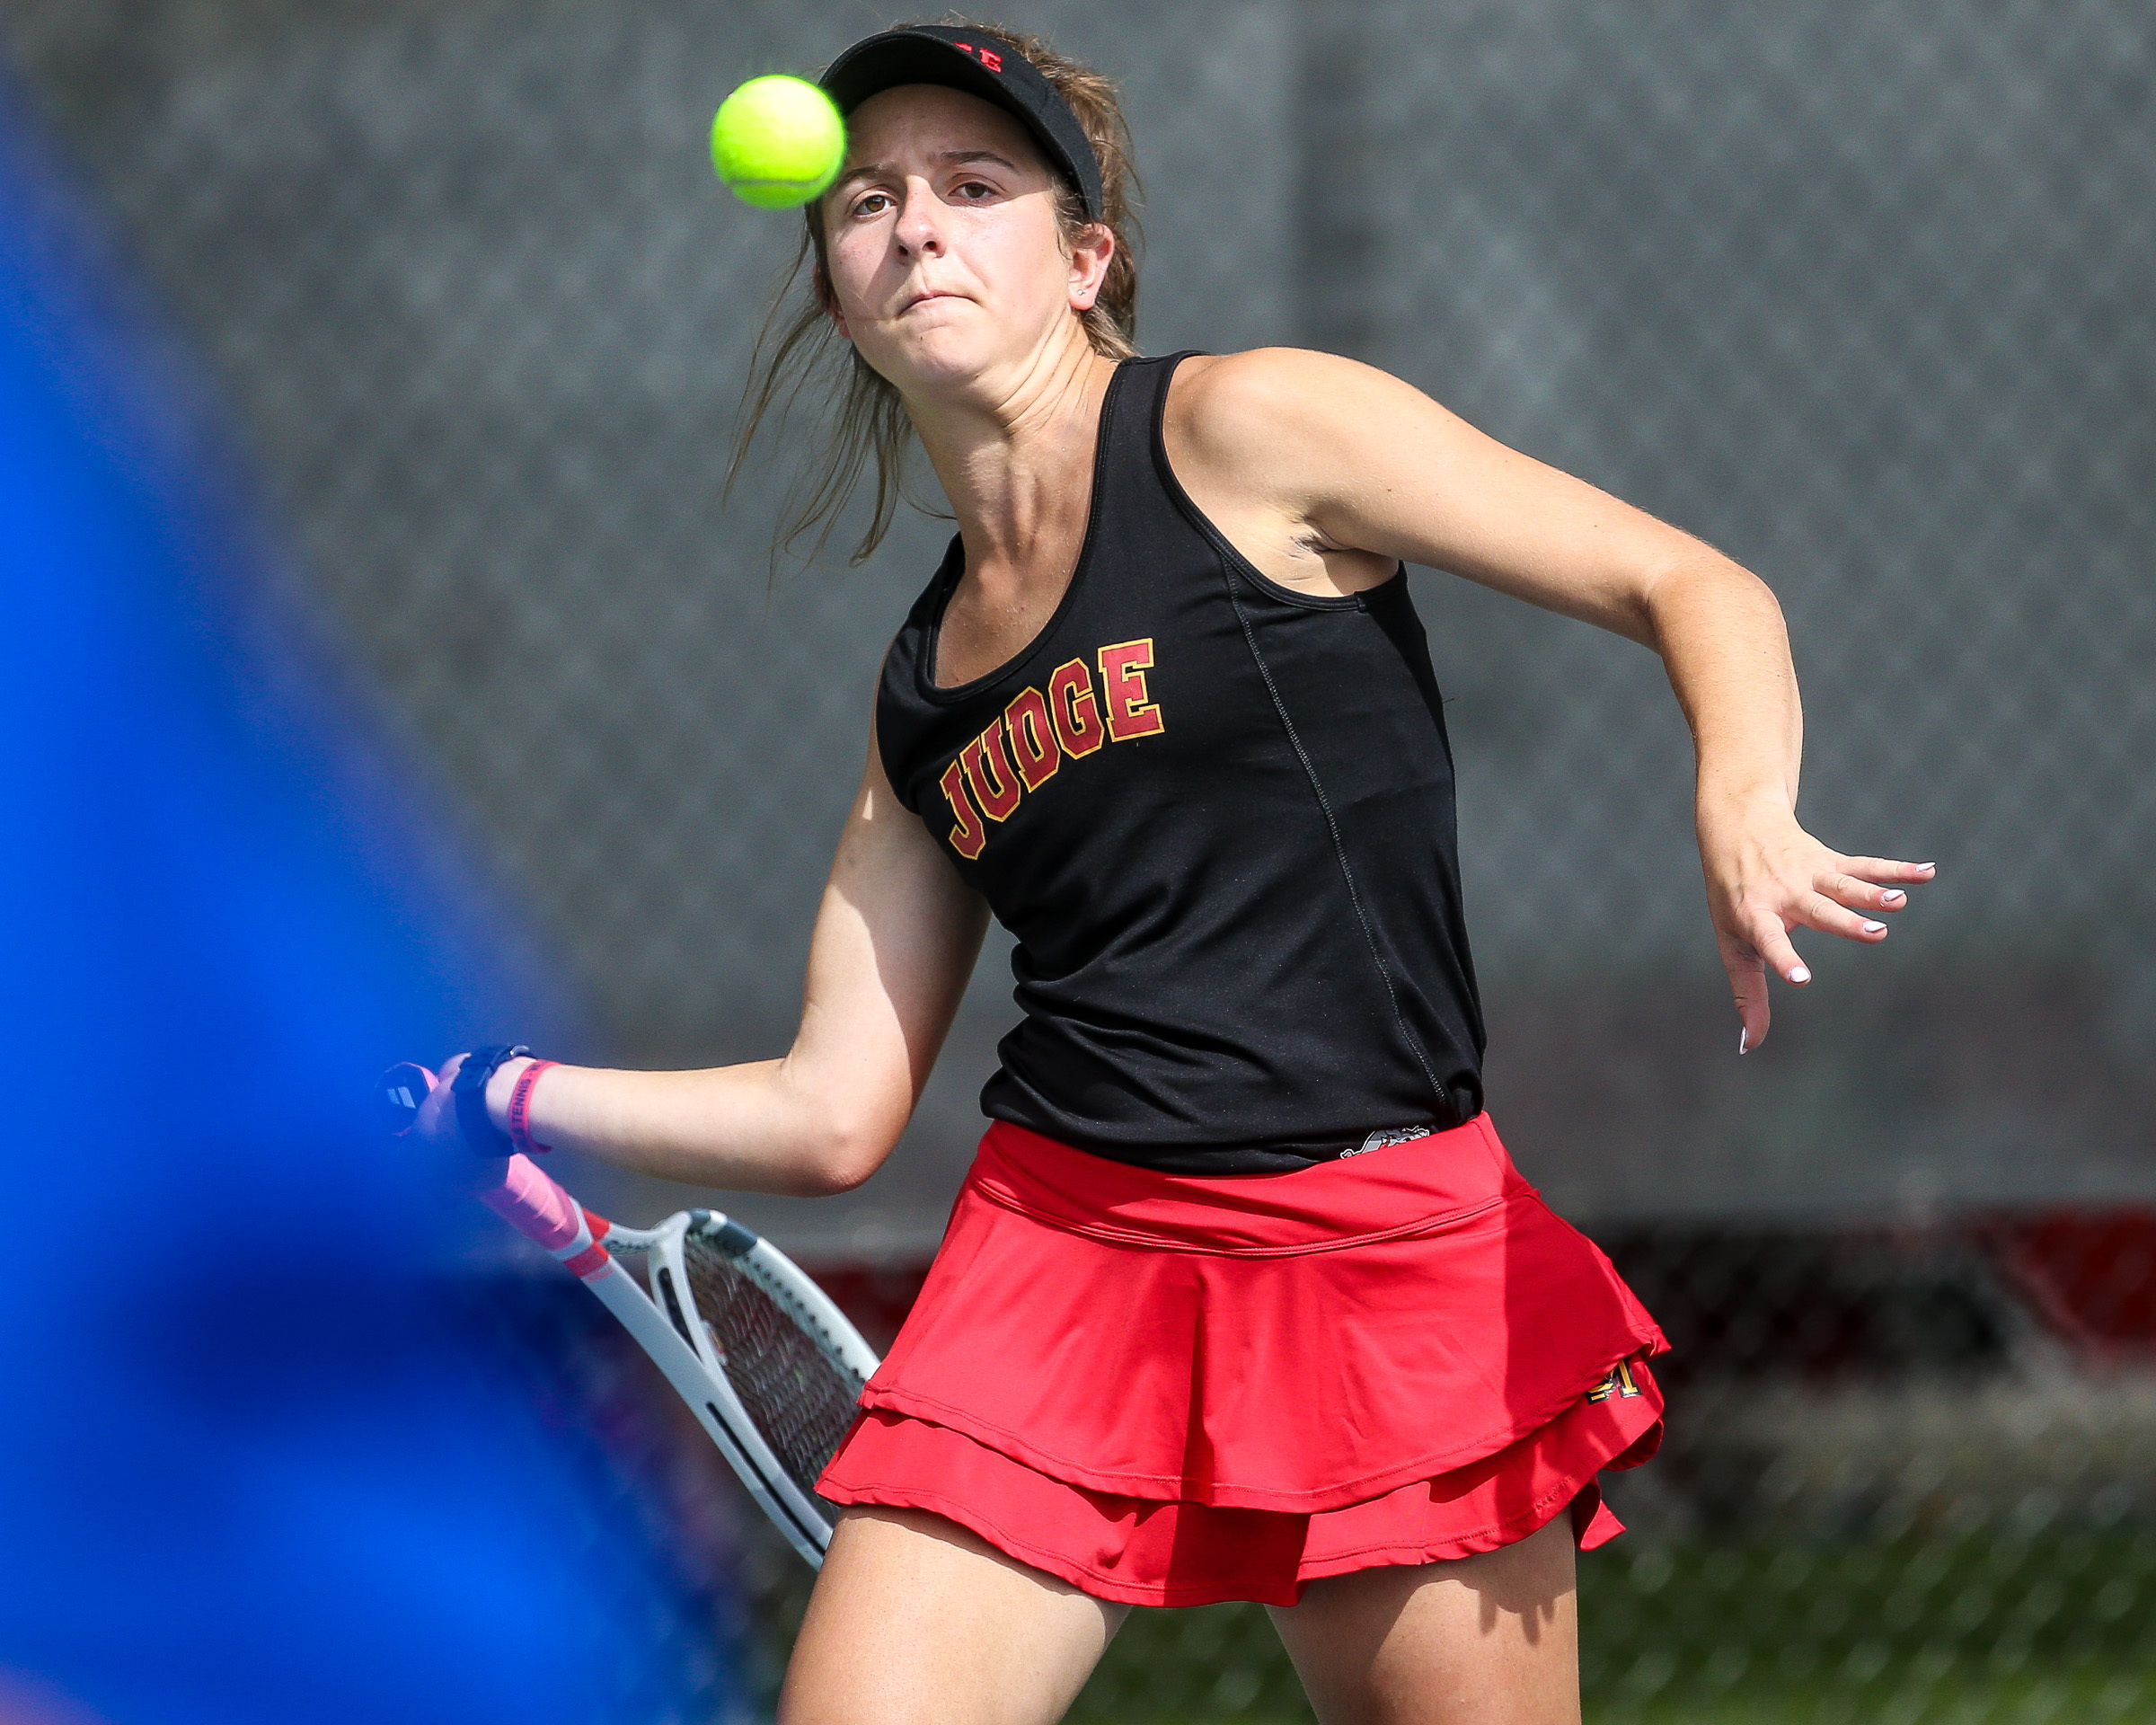 Judge Memorial's Olivia Anderson competes in the No. 2 singles championship match against Waterford's Noelle Kieffer during the 3A state tennis tournament at the Liberty Park Tennis Center in Salt Lake City on Saturday, Sept. 29, 2018.